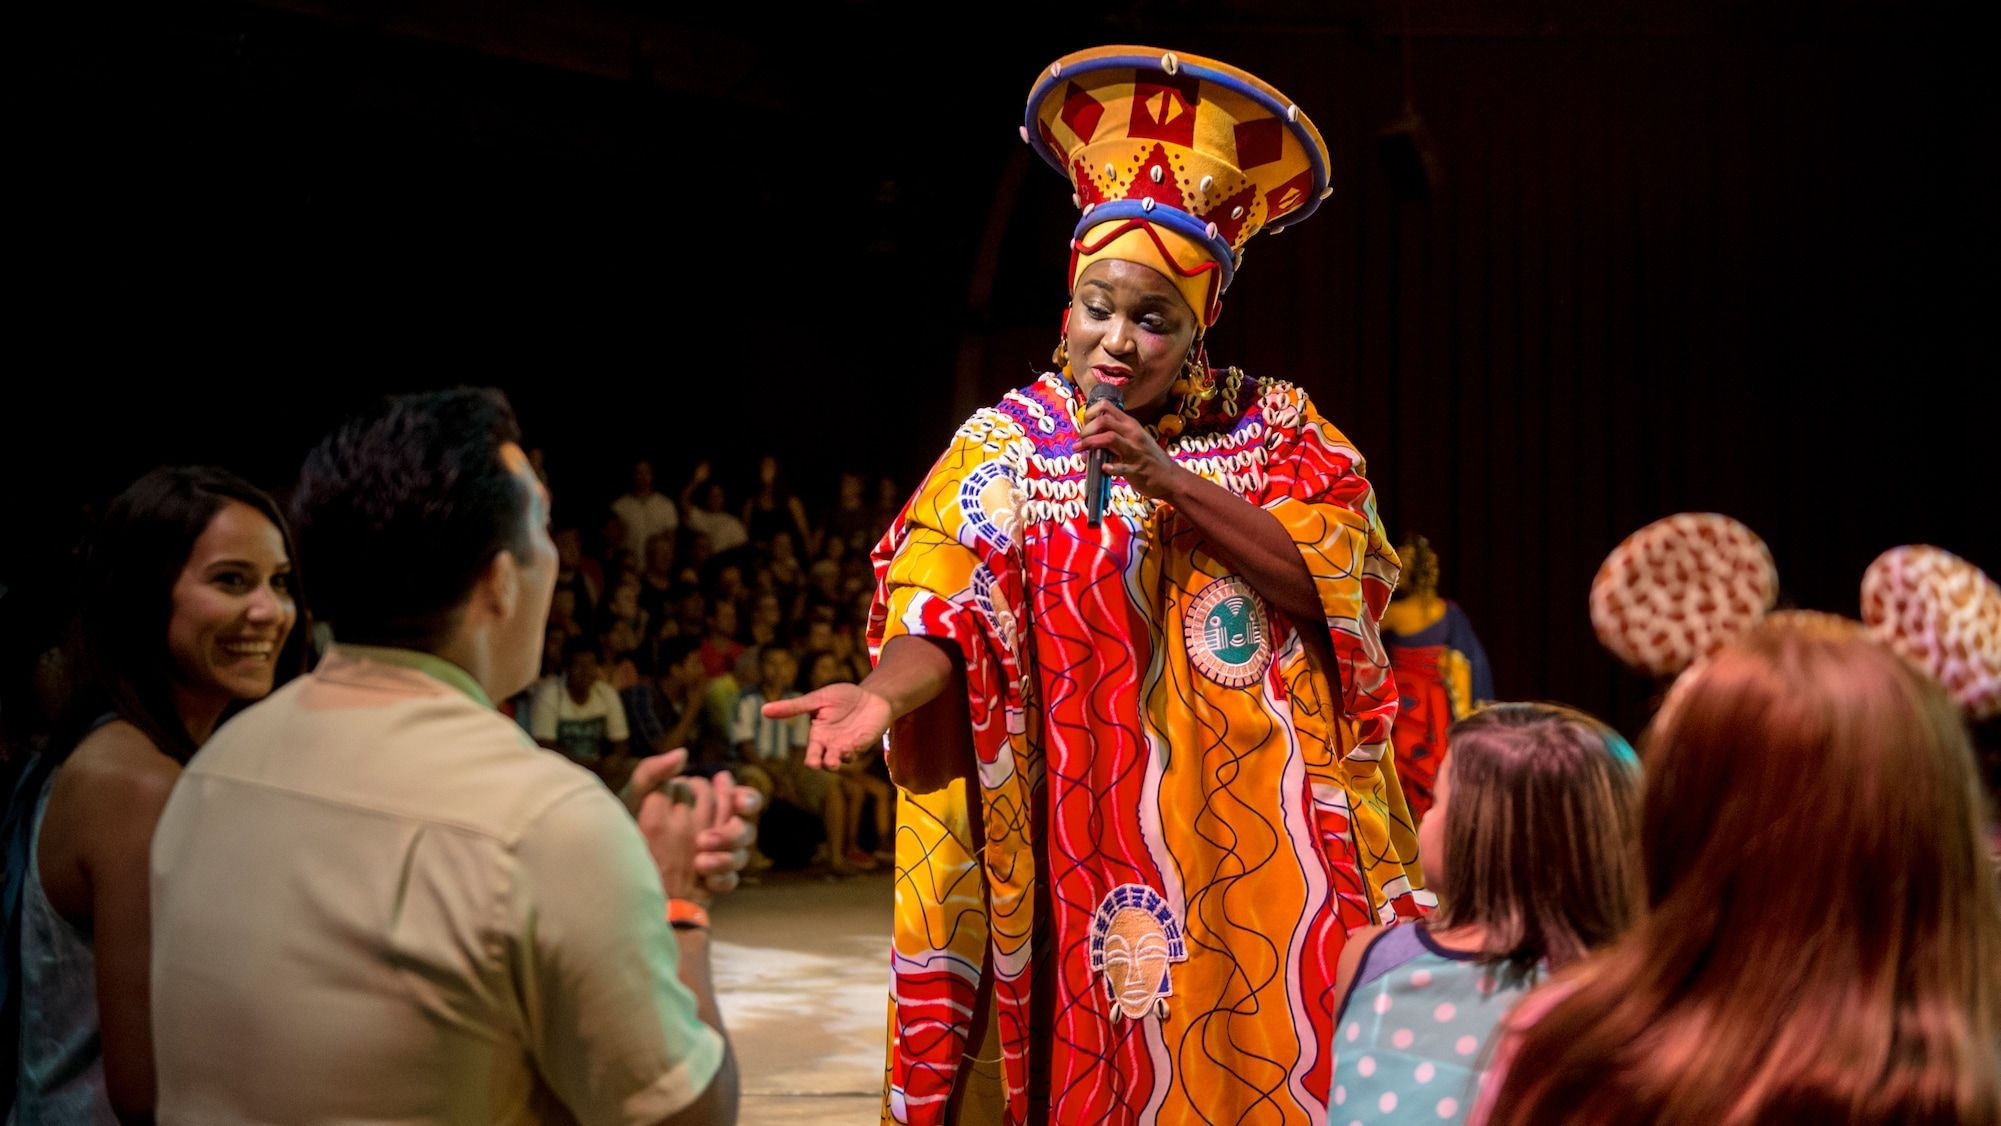 A performer dressed in an African tribal costume reaches